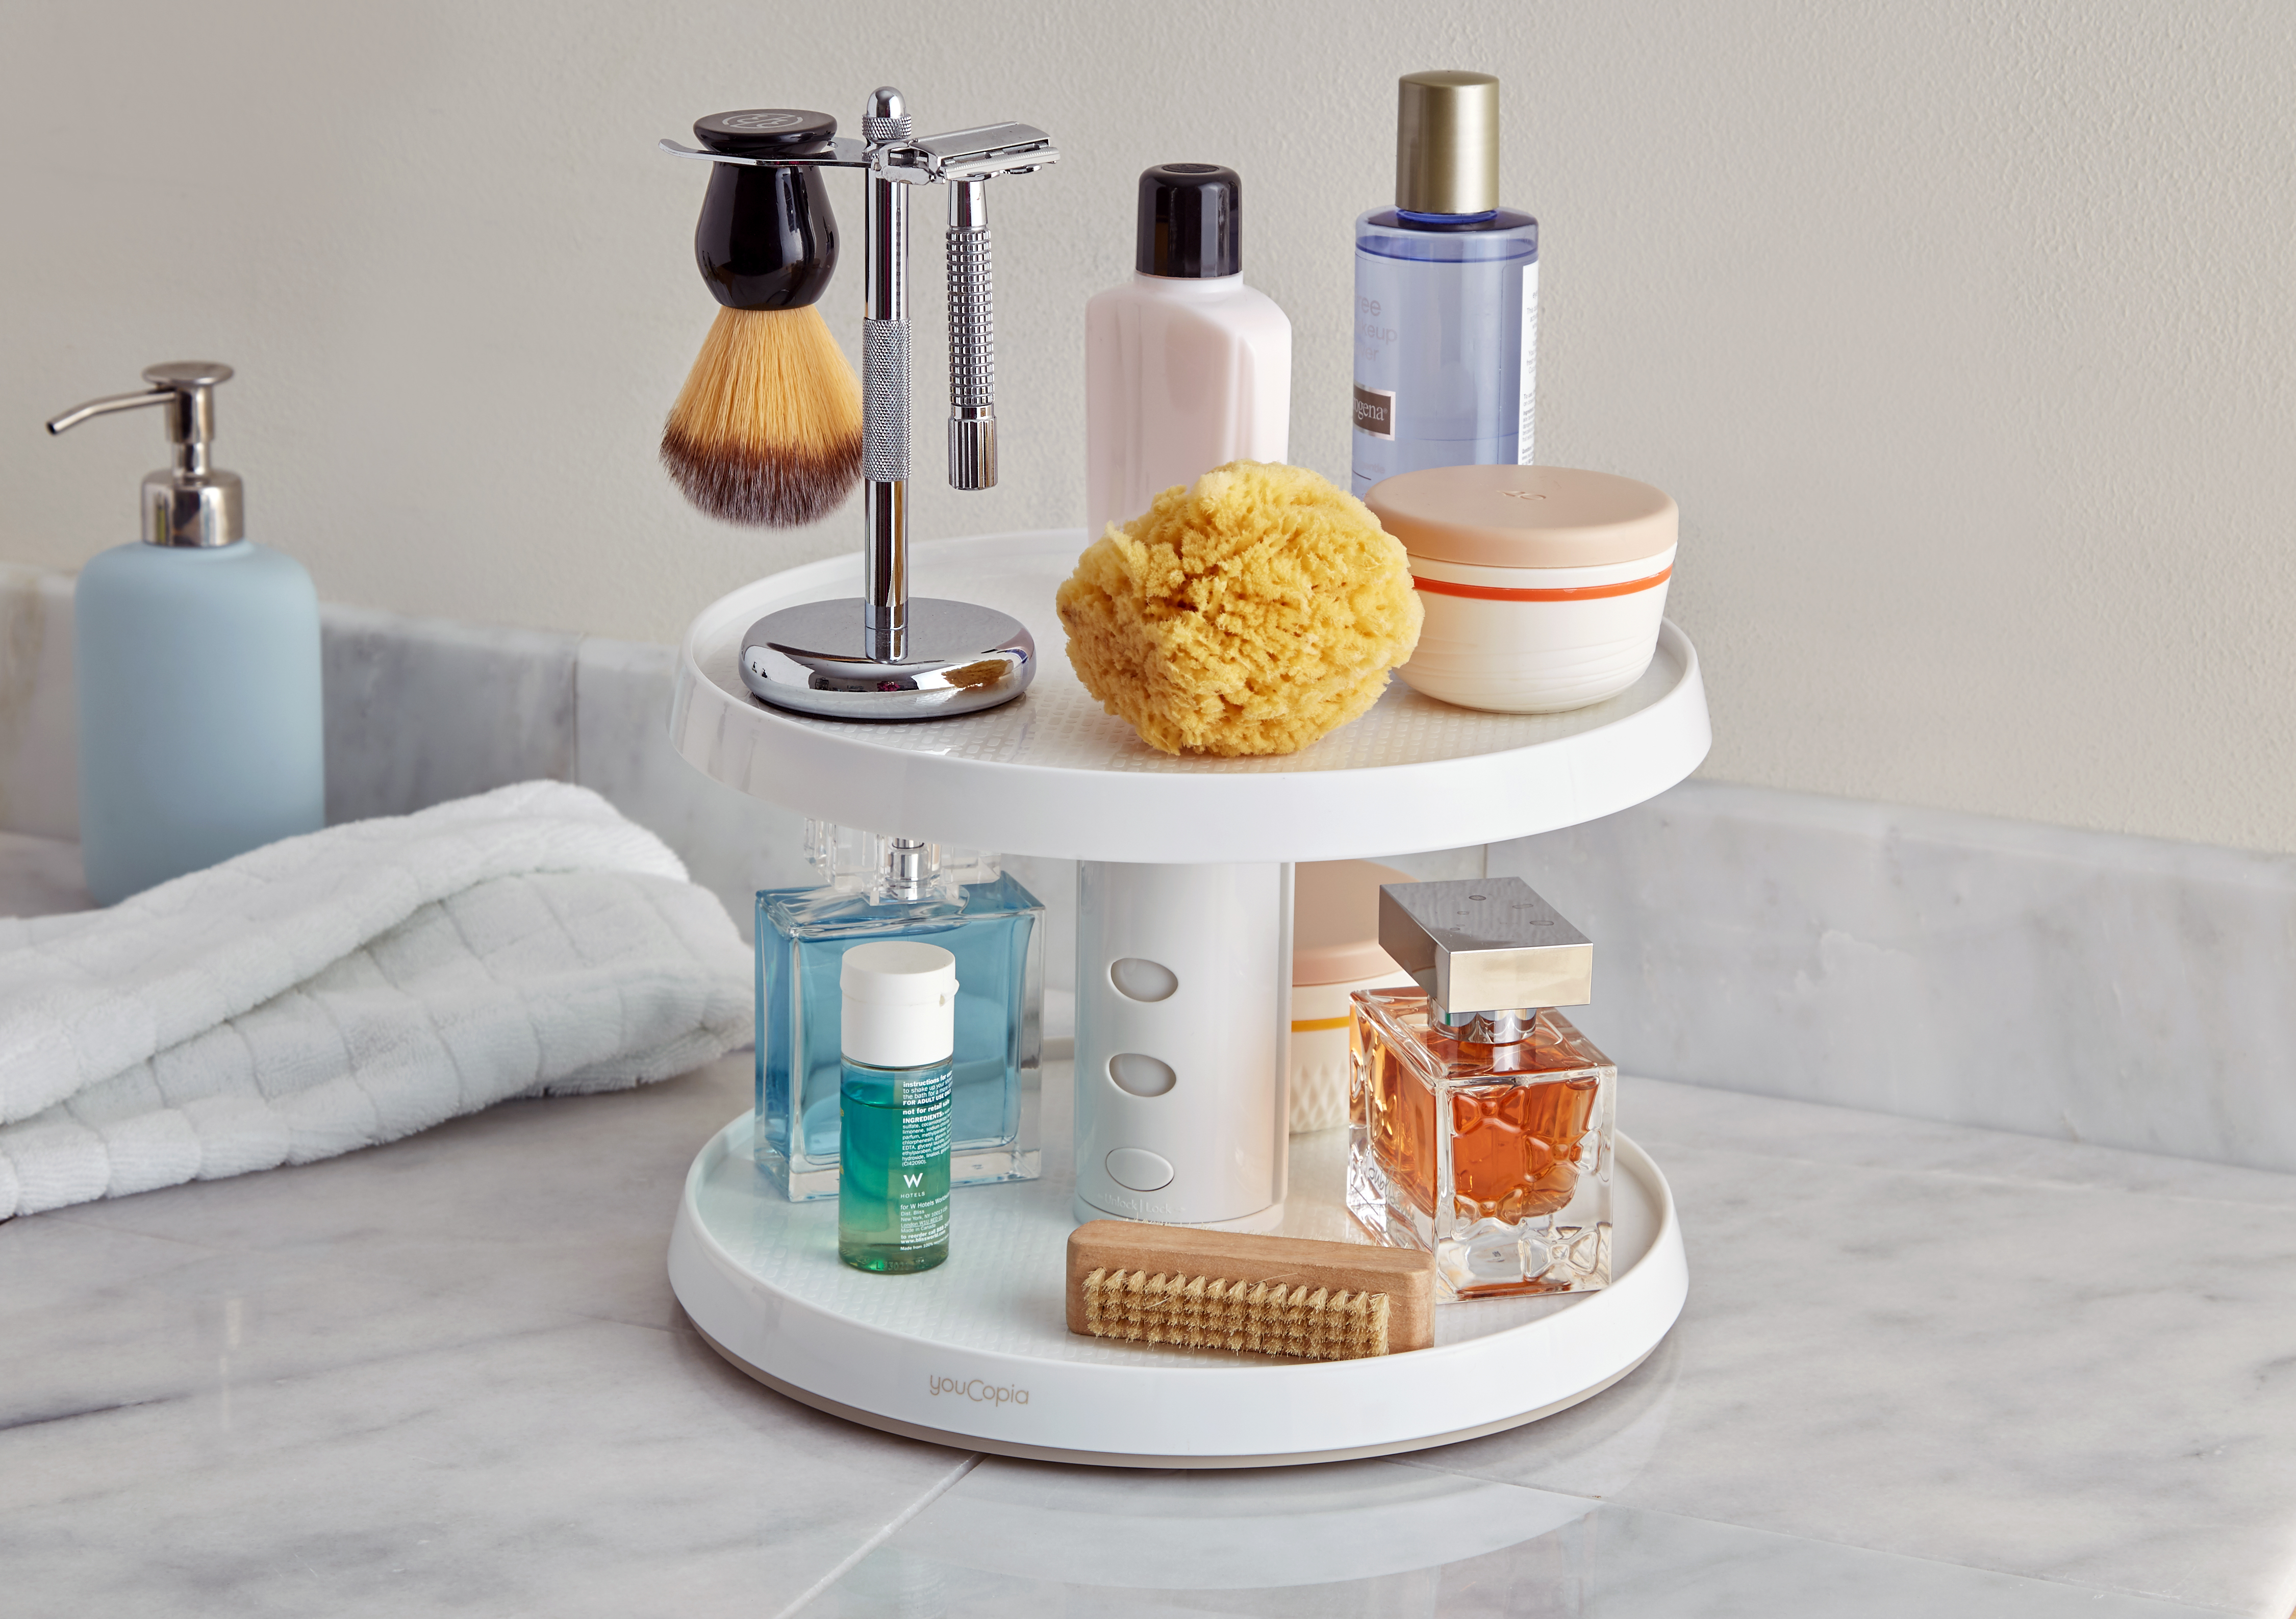 Toiletries are organized neatly on YouCopia's  Crazy Susan 2-tier turntable